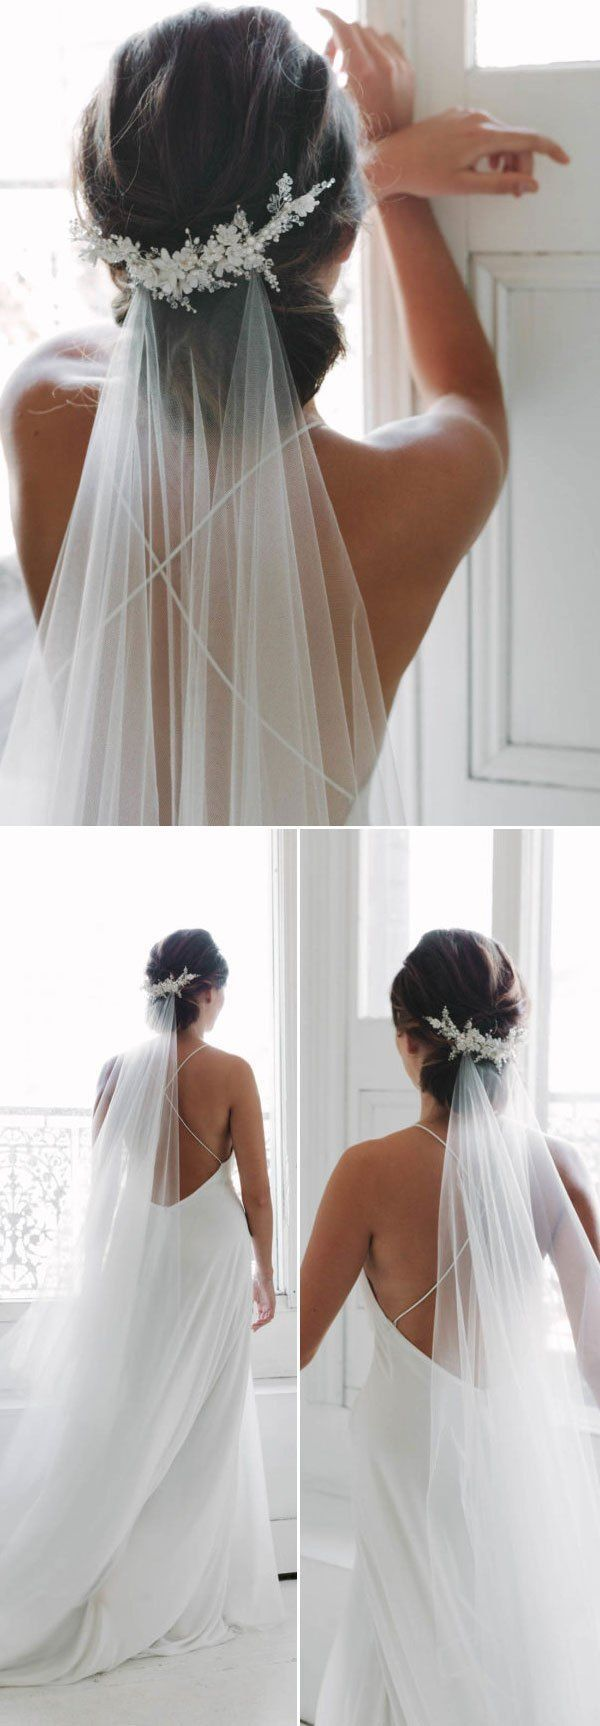 5032 best Wedding Hairstyles images on Pinterest | Hair dos, Bridal ...